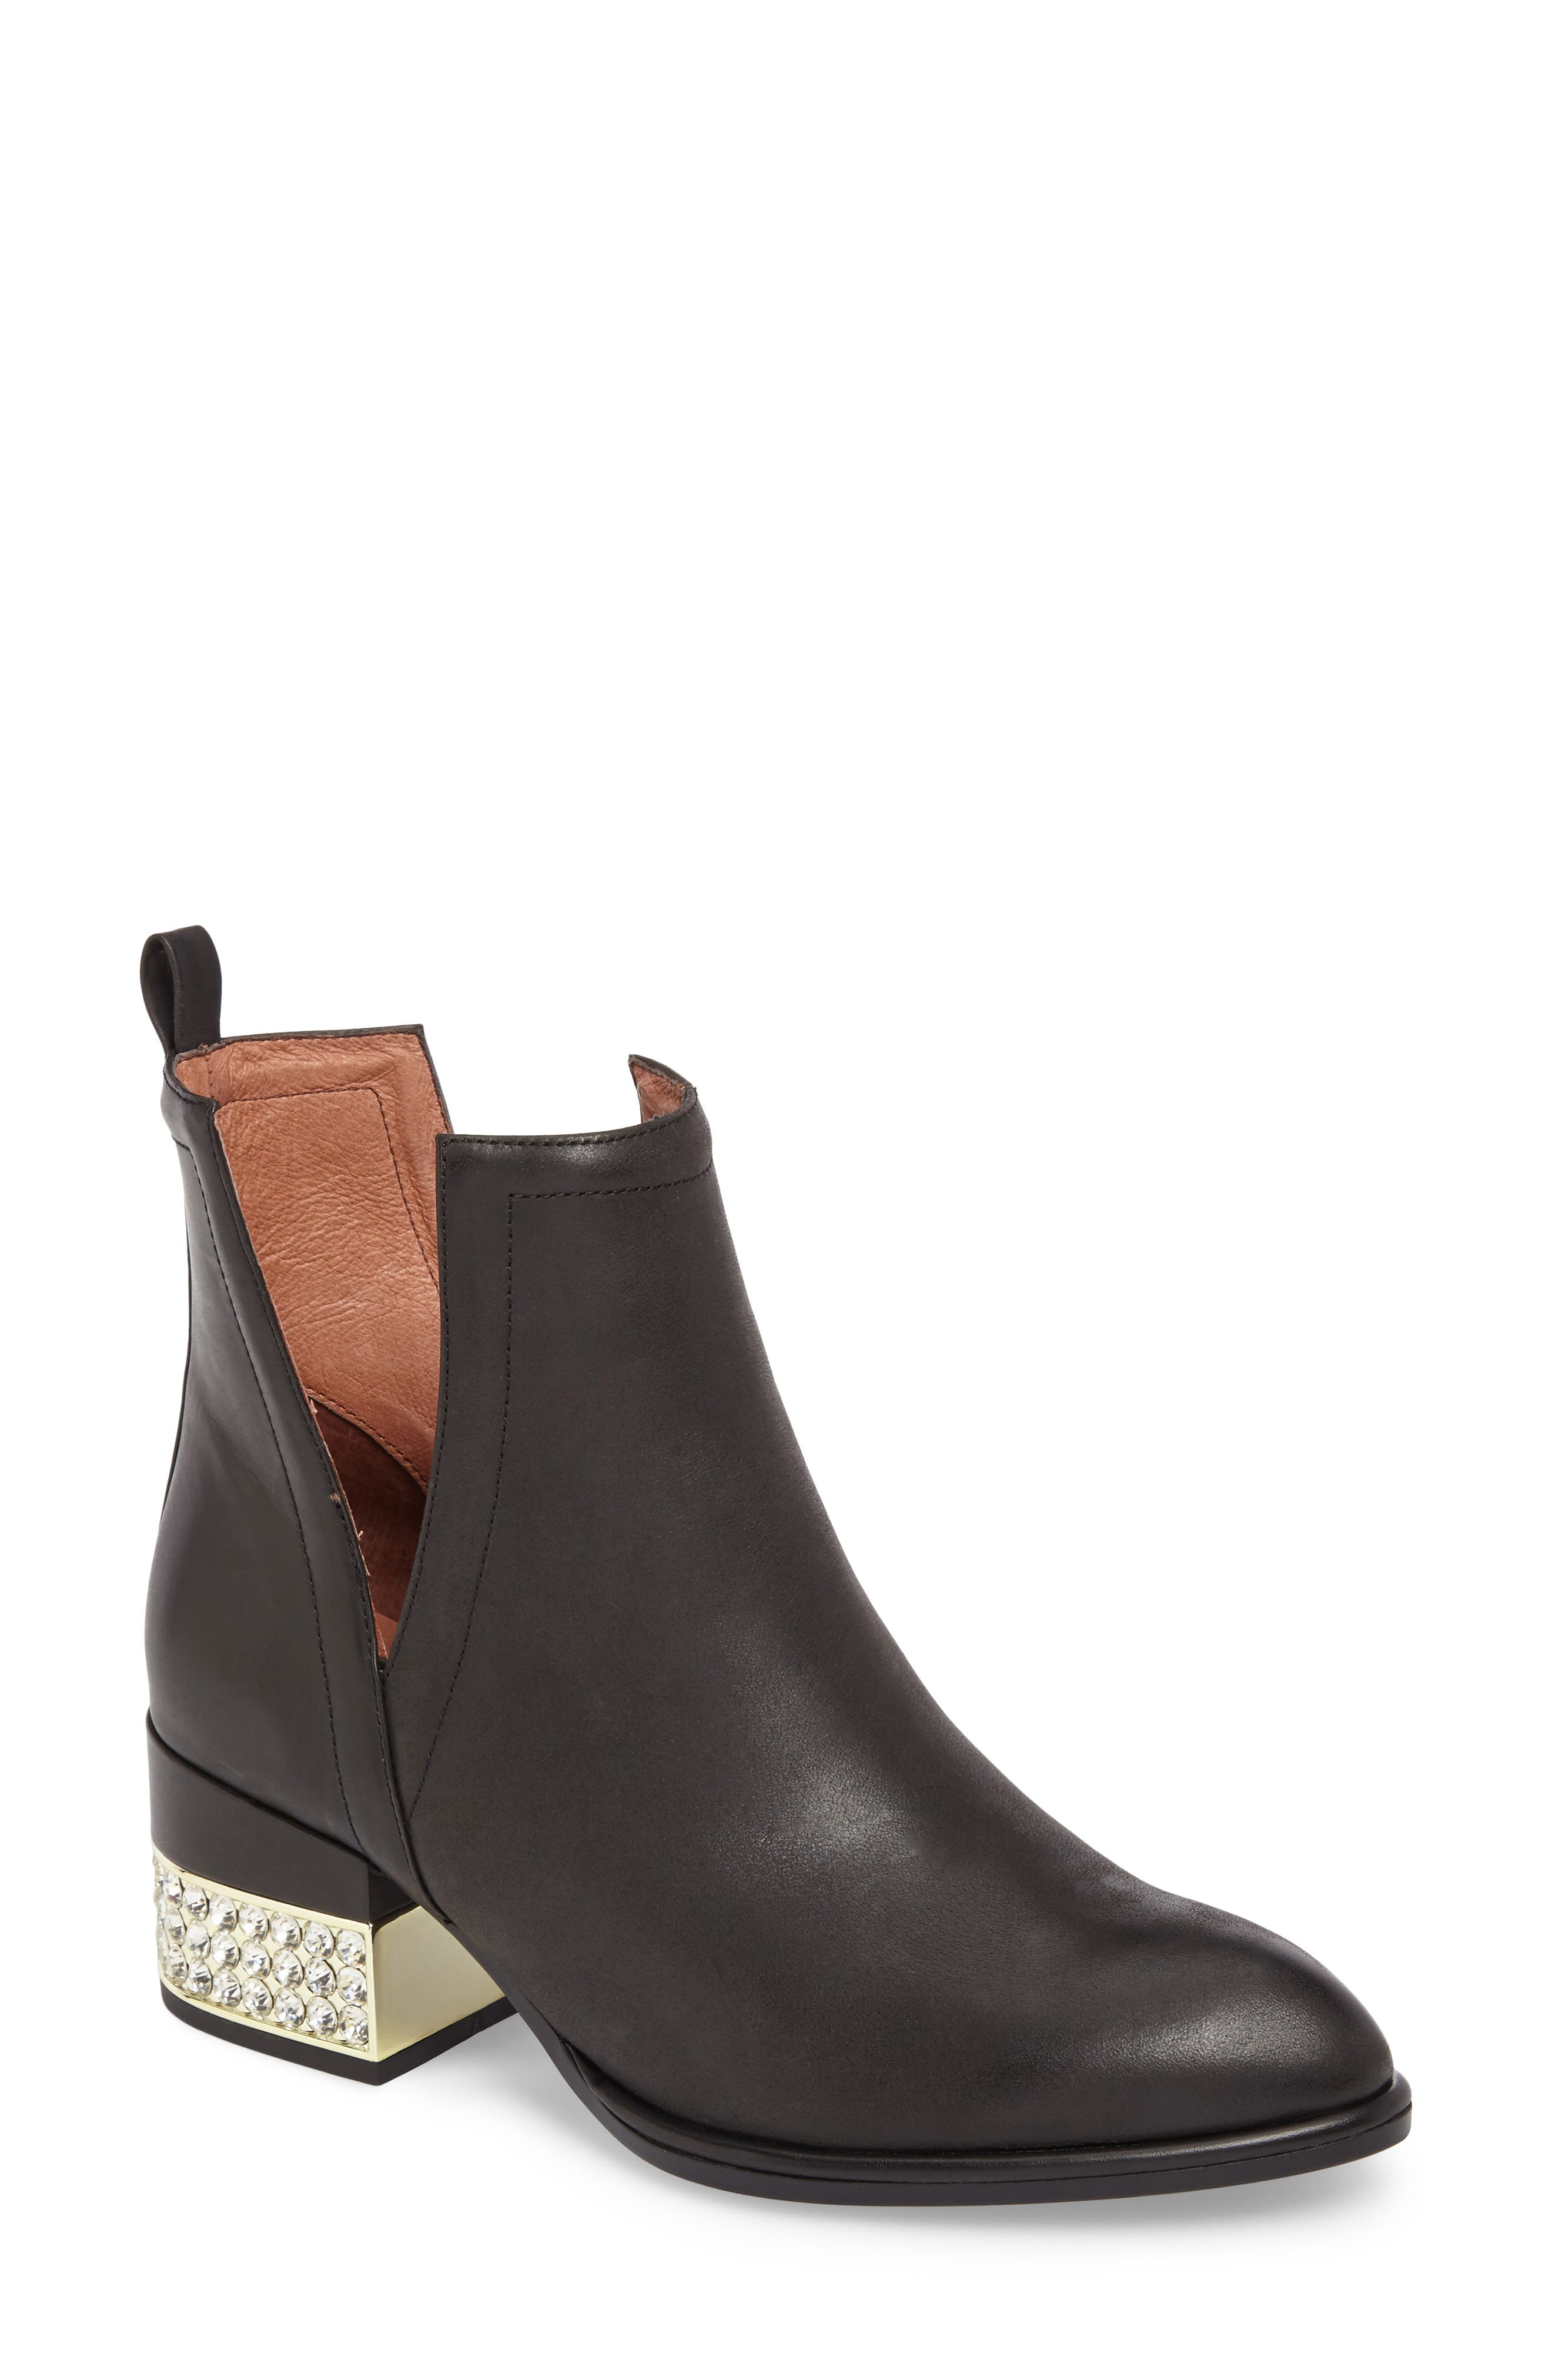 Main Image - Jeffrey Campbell Crystal Embellished Musk Bootie (Women)